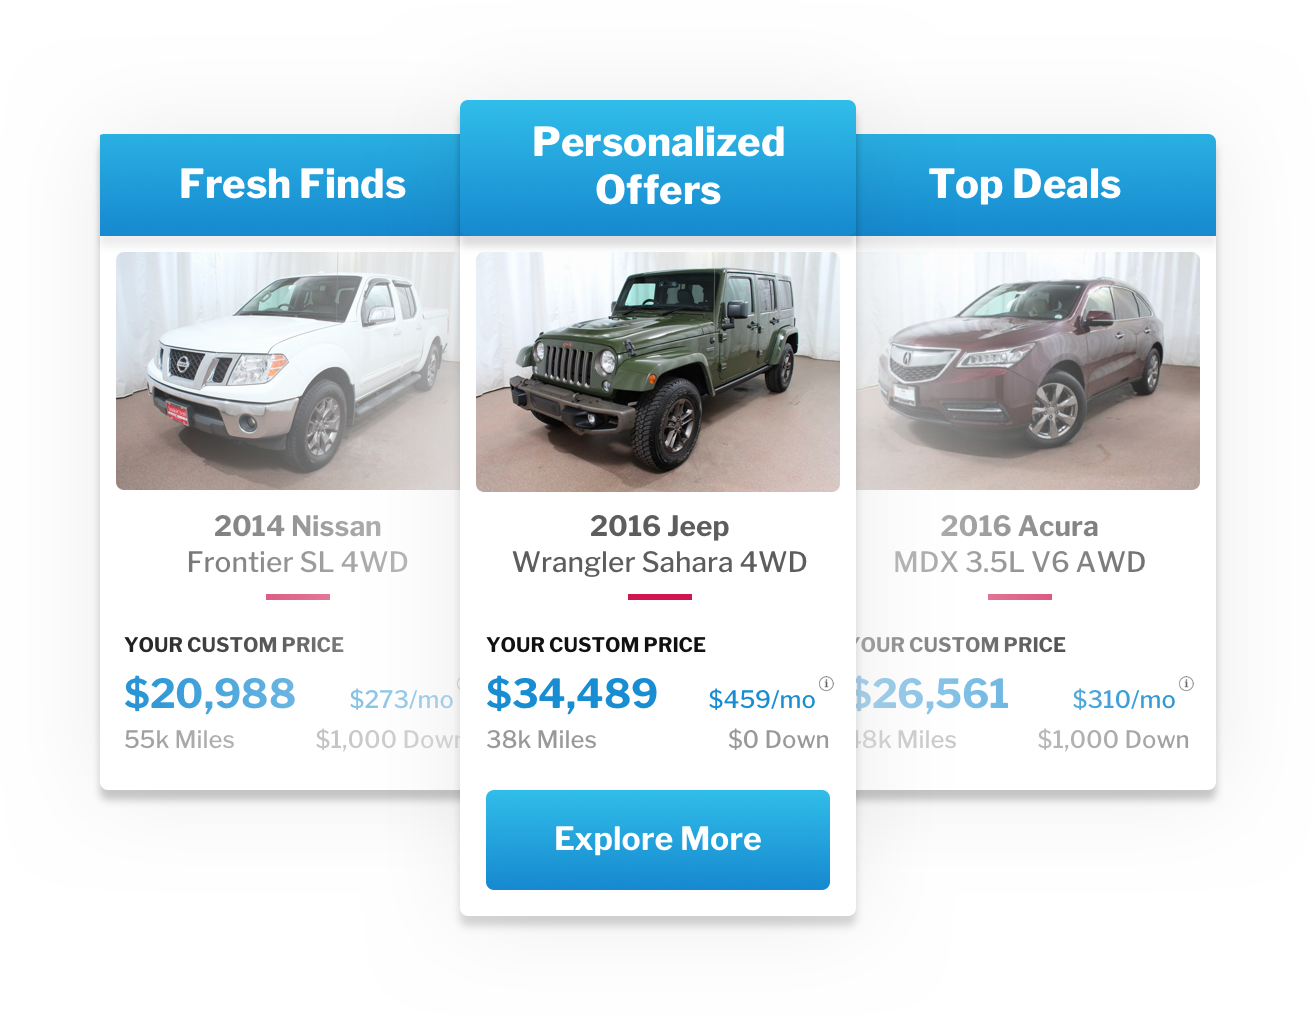 Red Noland Used Cars in Colorado Springs, CO | Used Car Dealer